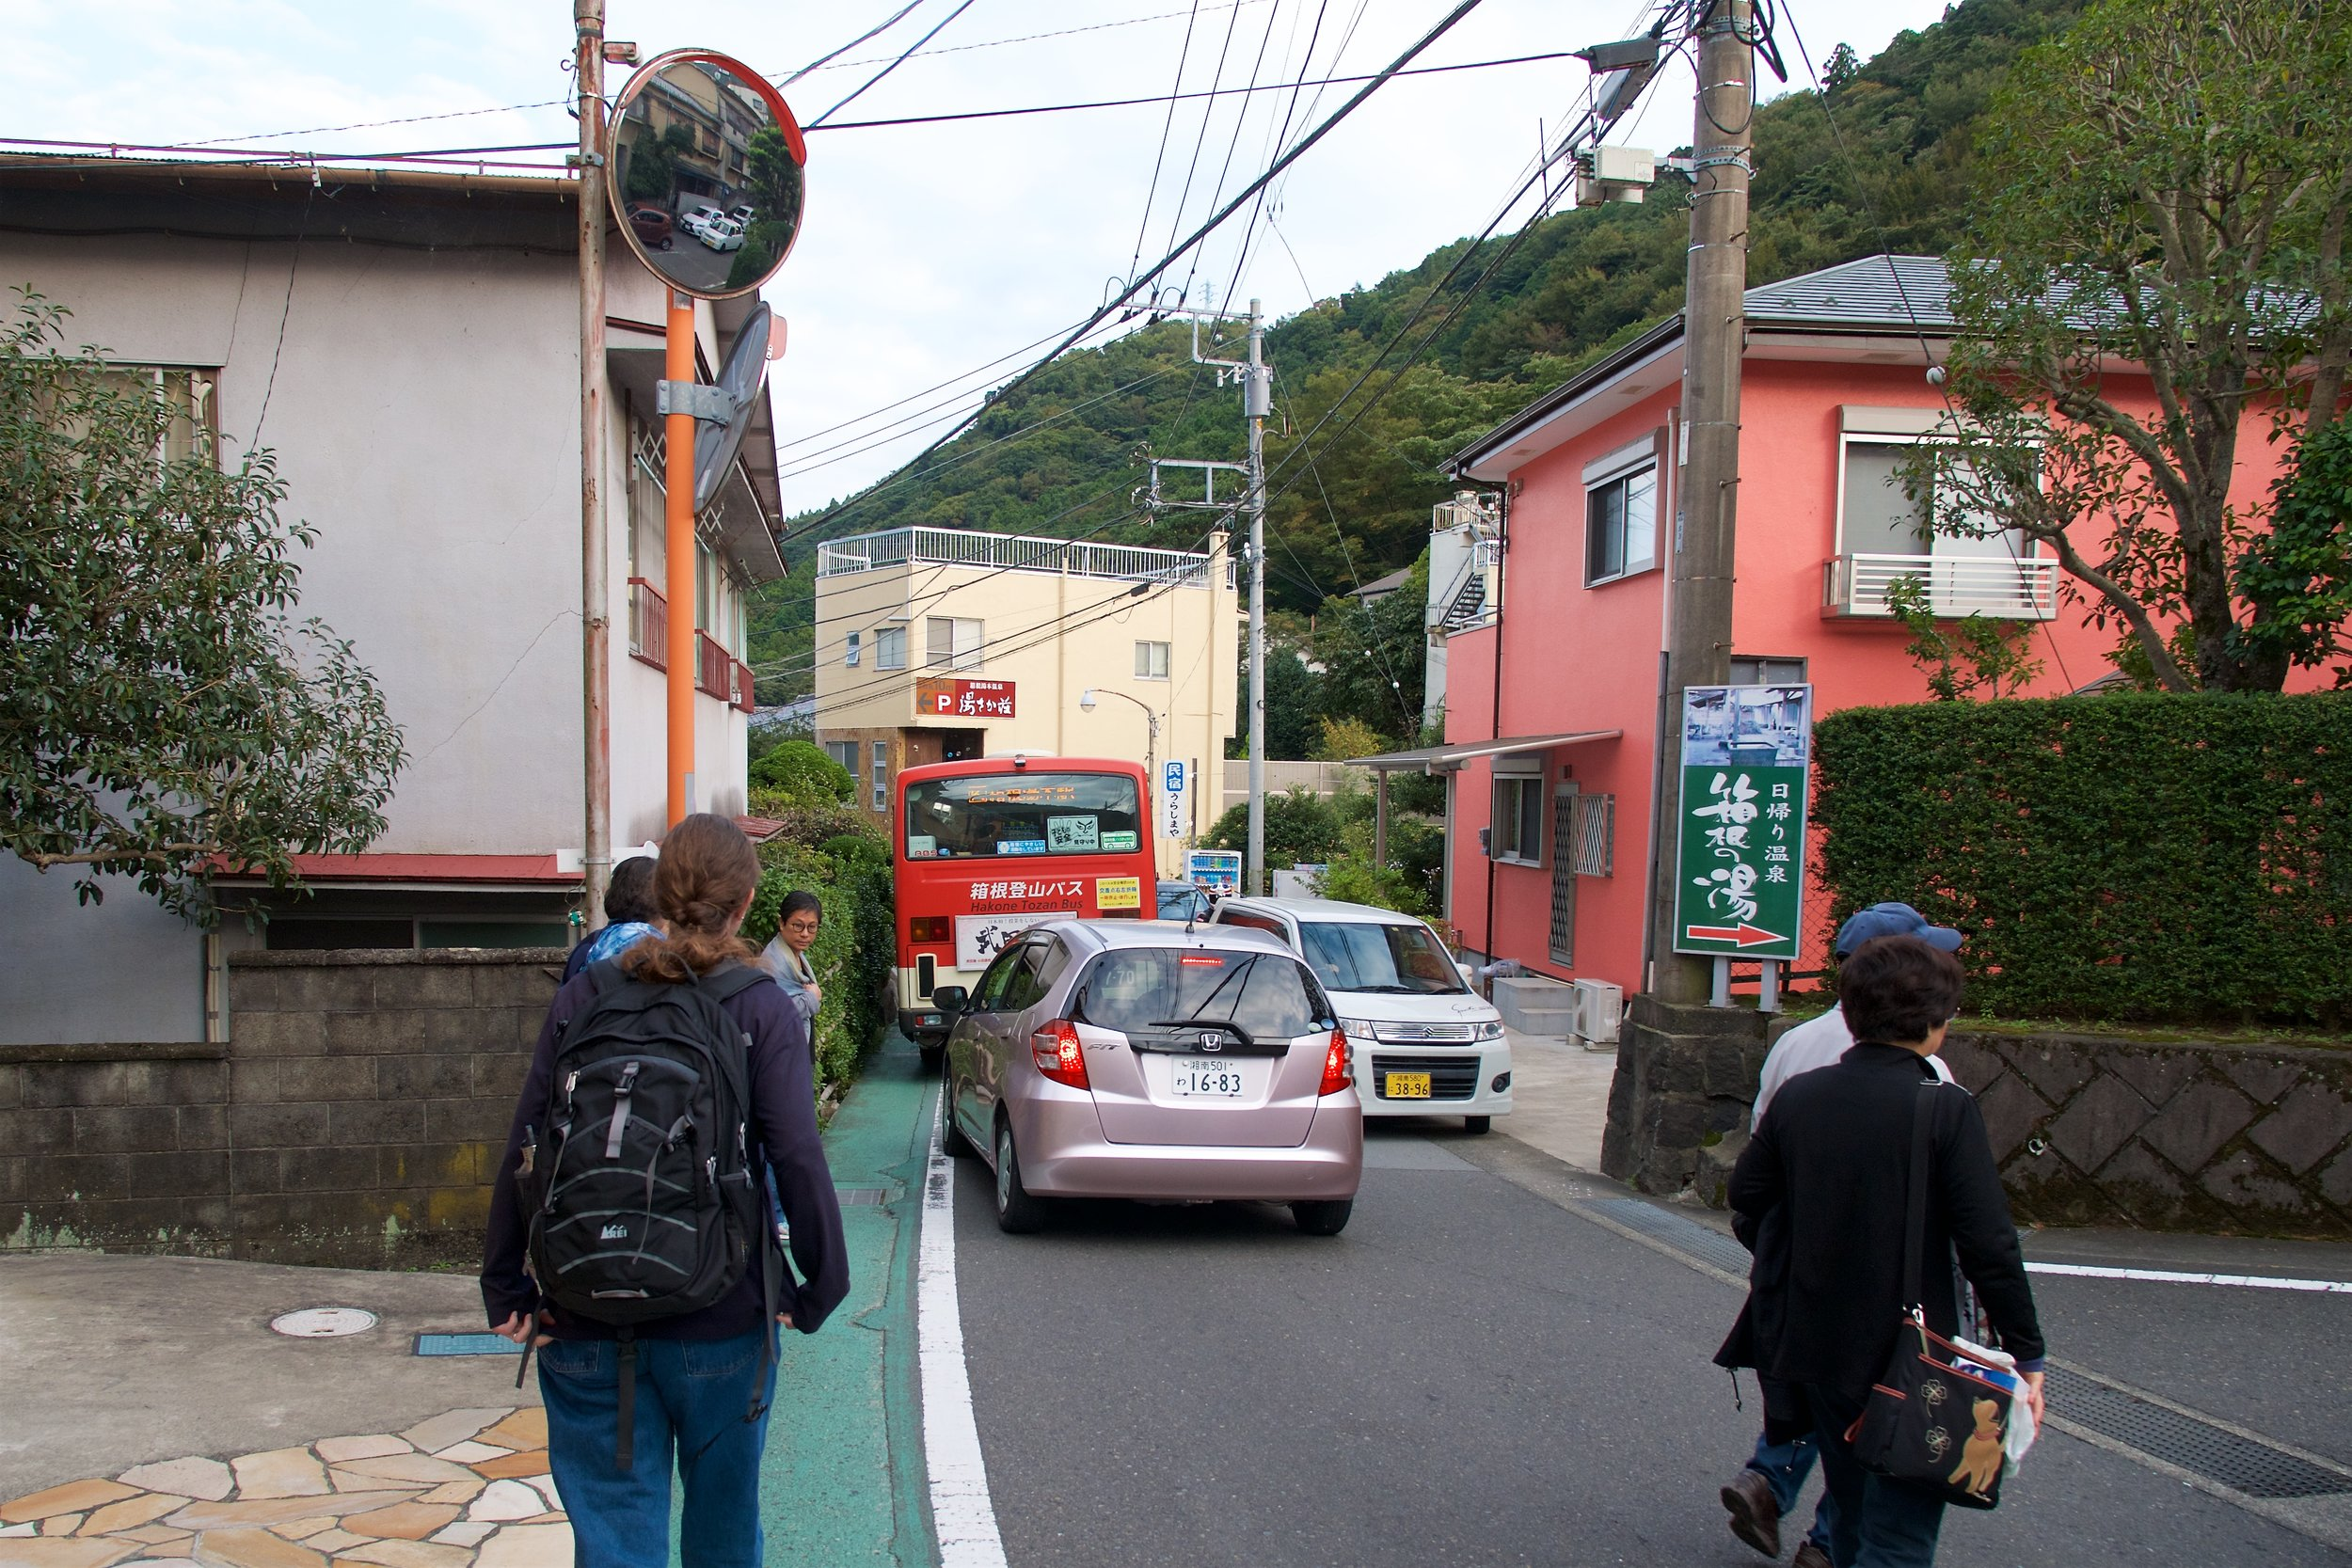 Traffic squeezing trough the narrow street